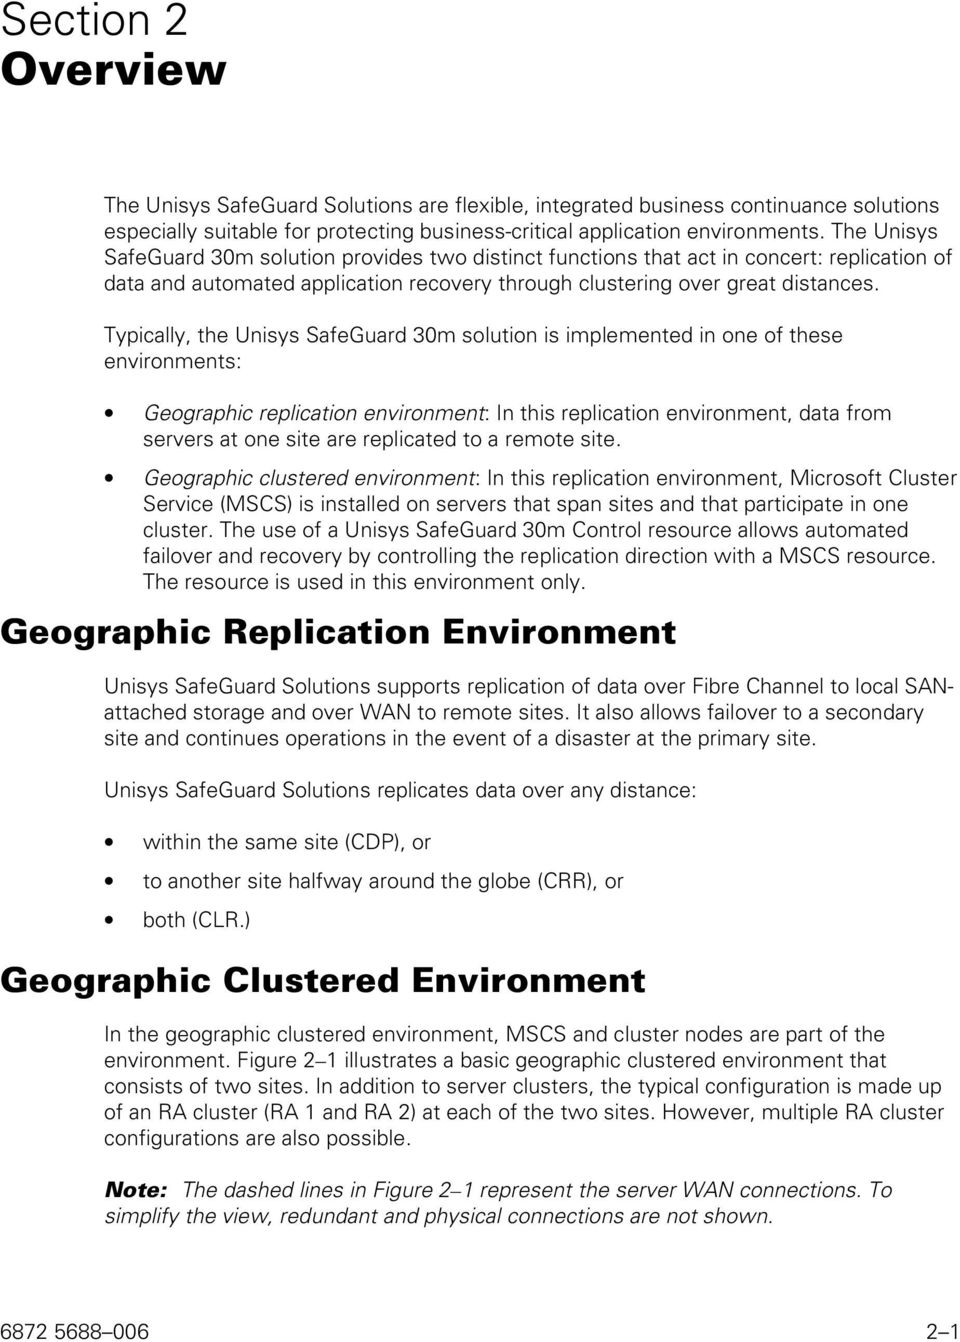 Typically, the Unisys SafeGuard 30m solution is implemented in one of these environments: Geographic replication environment: In this replication environment, data from servers at one site are